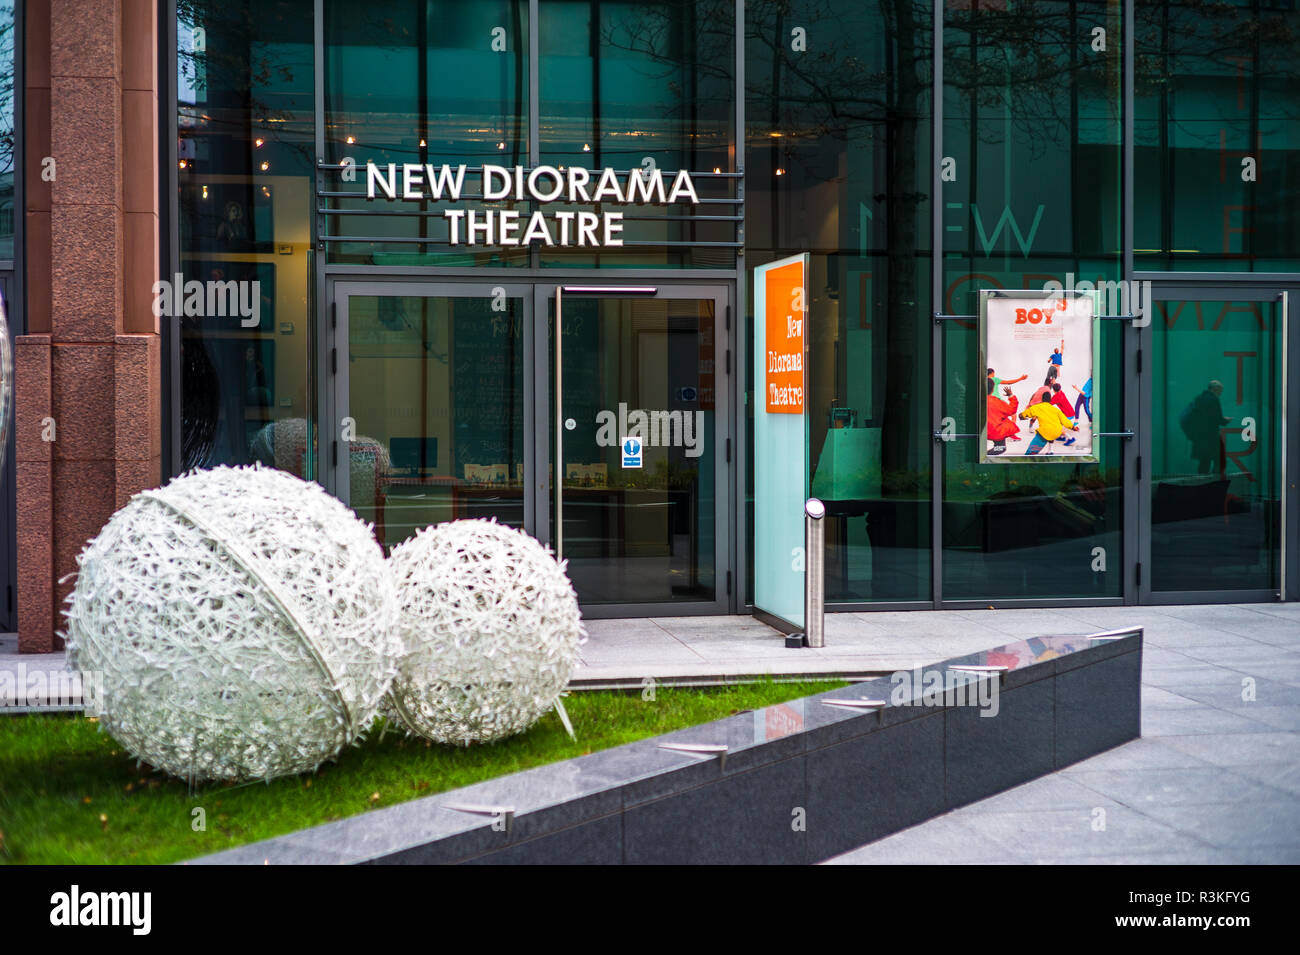 New Diorama Theatre an eighty-seat theatre near Regent's Park in central London, opened in 2010 - Stock Image